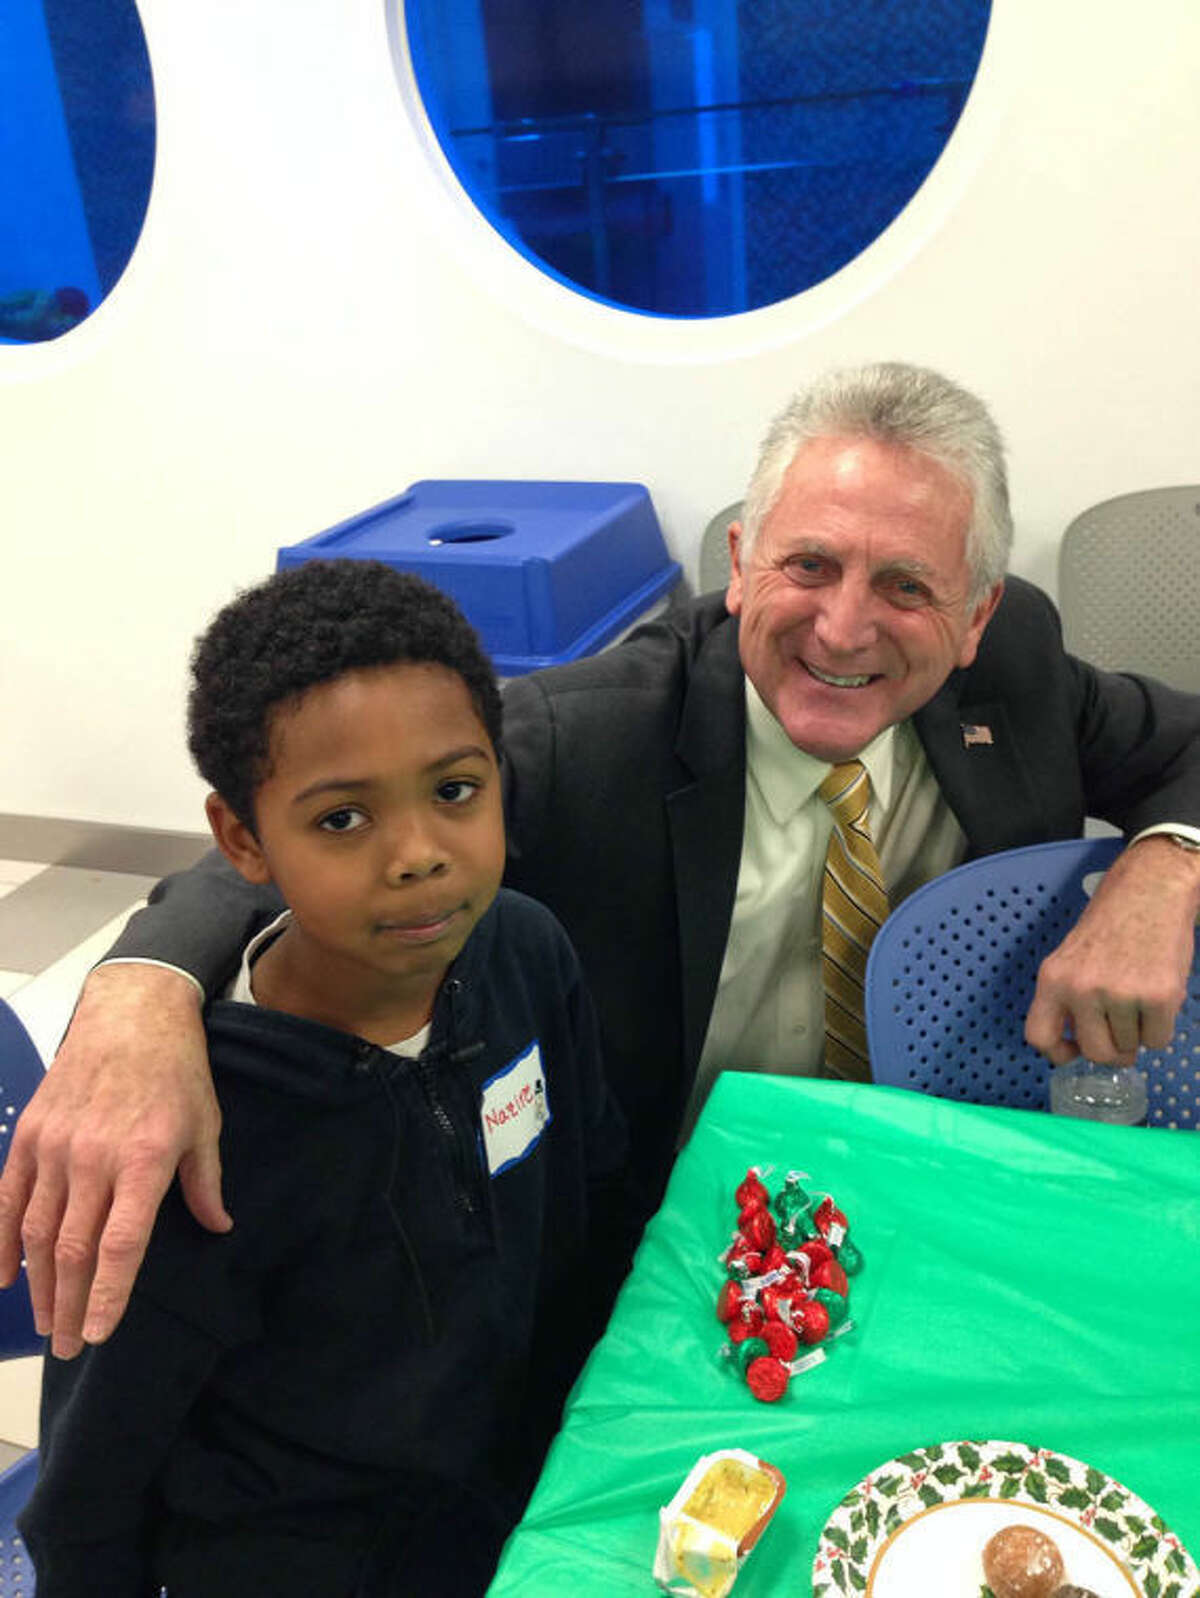 Mayor Rilling with his new friend.